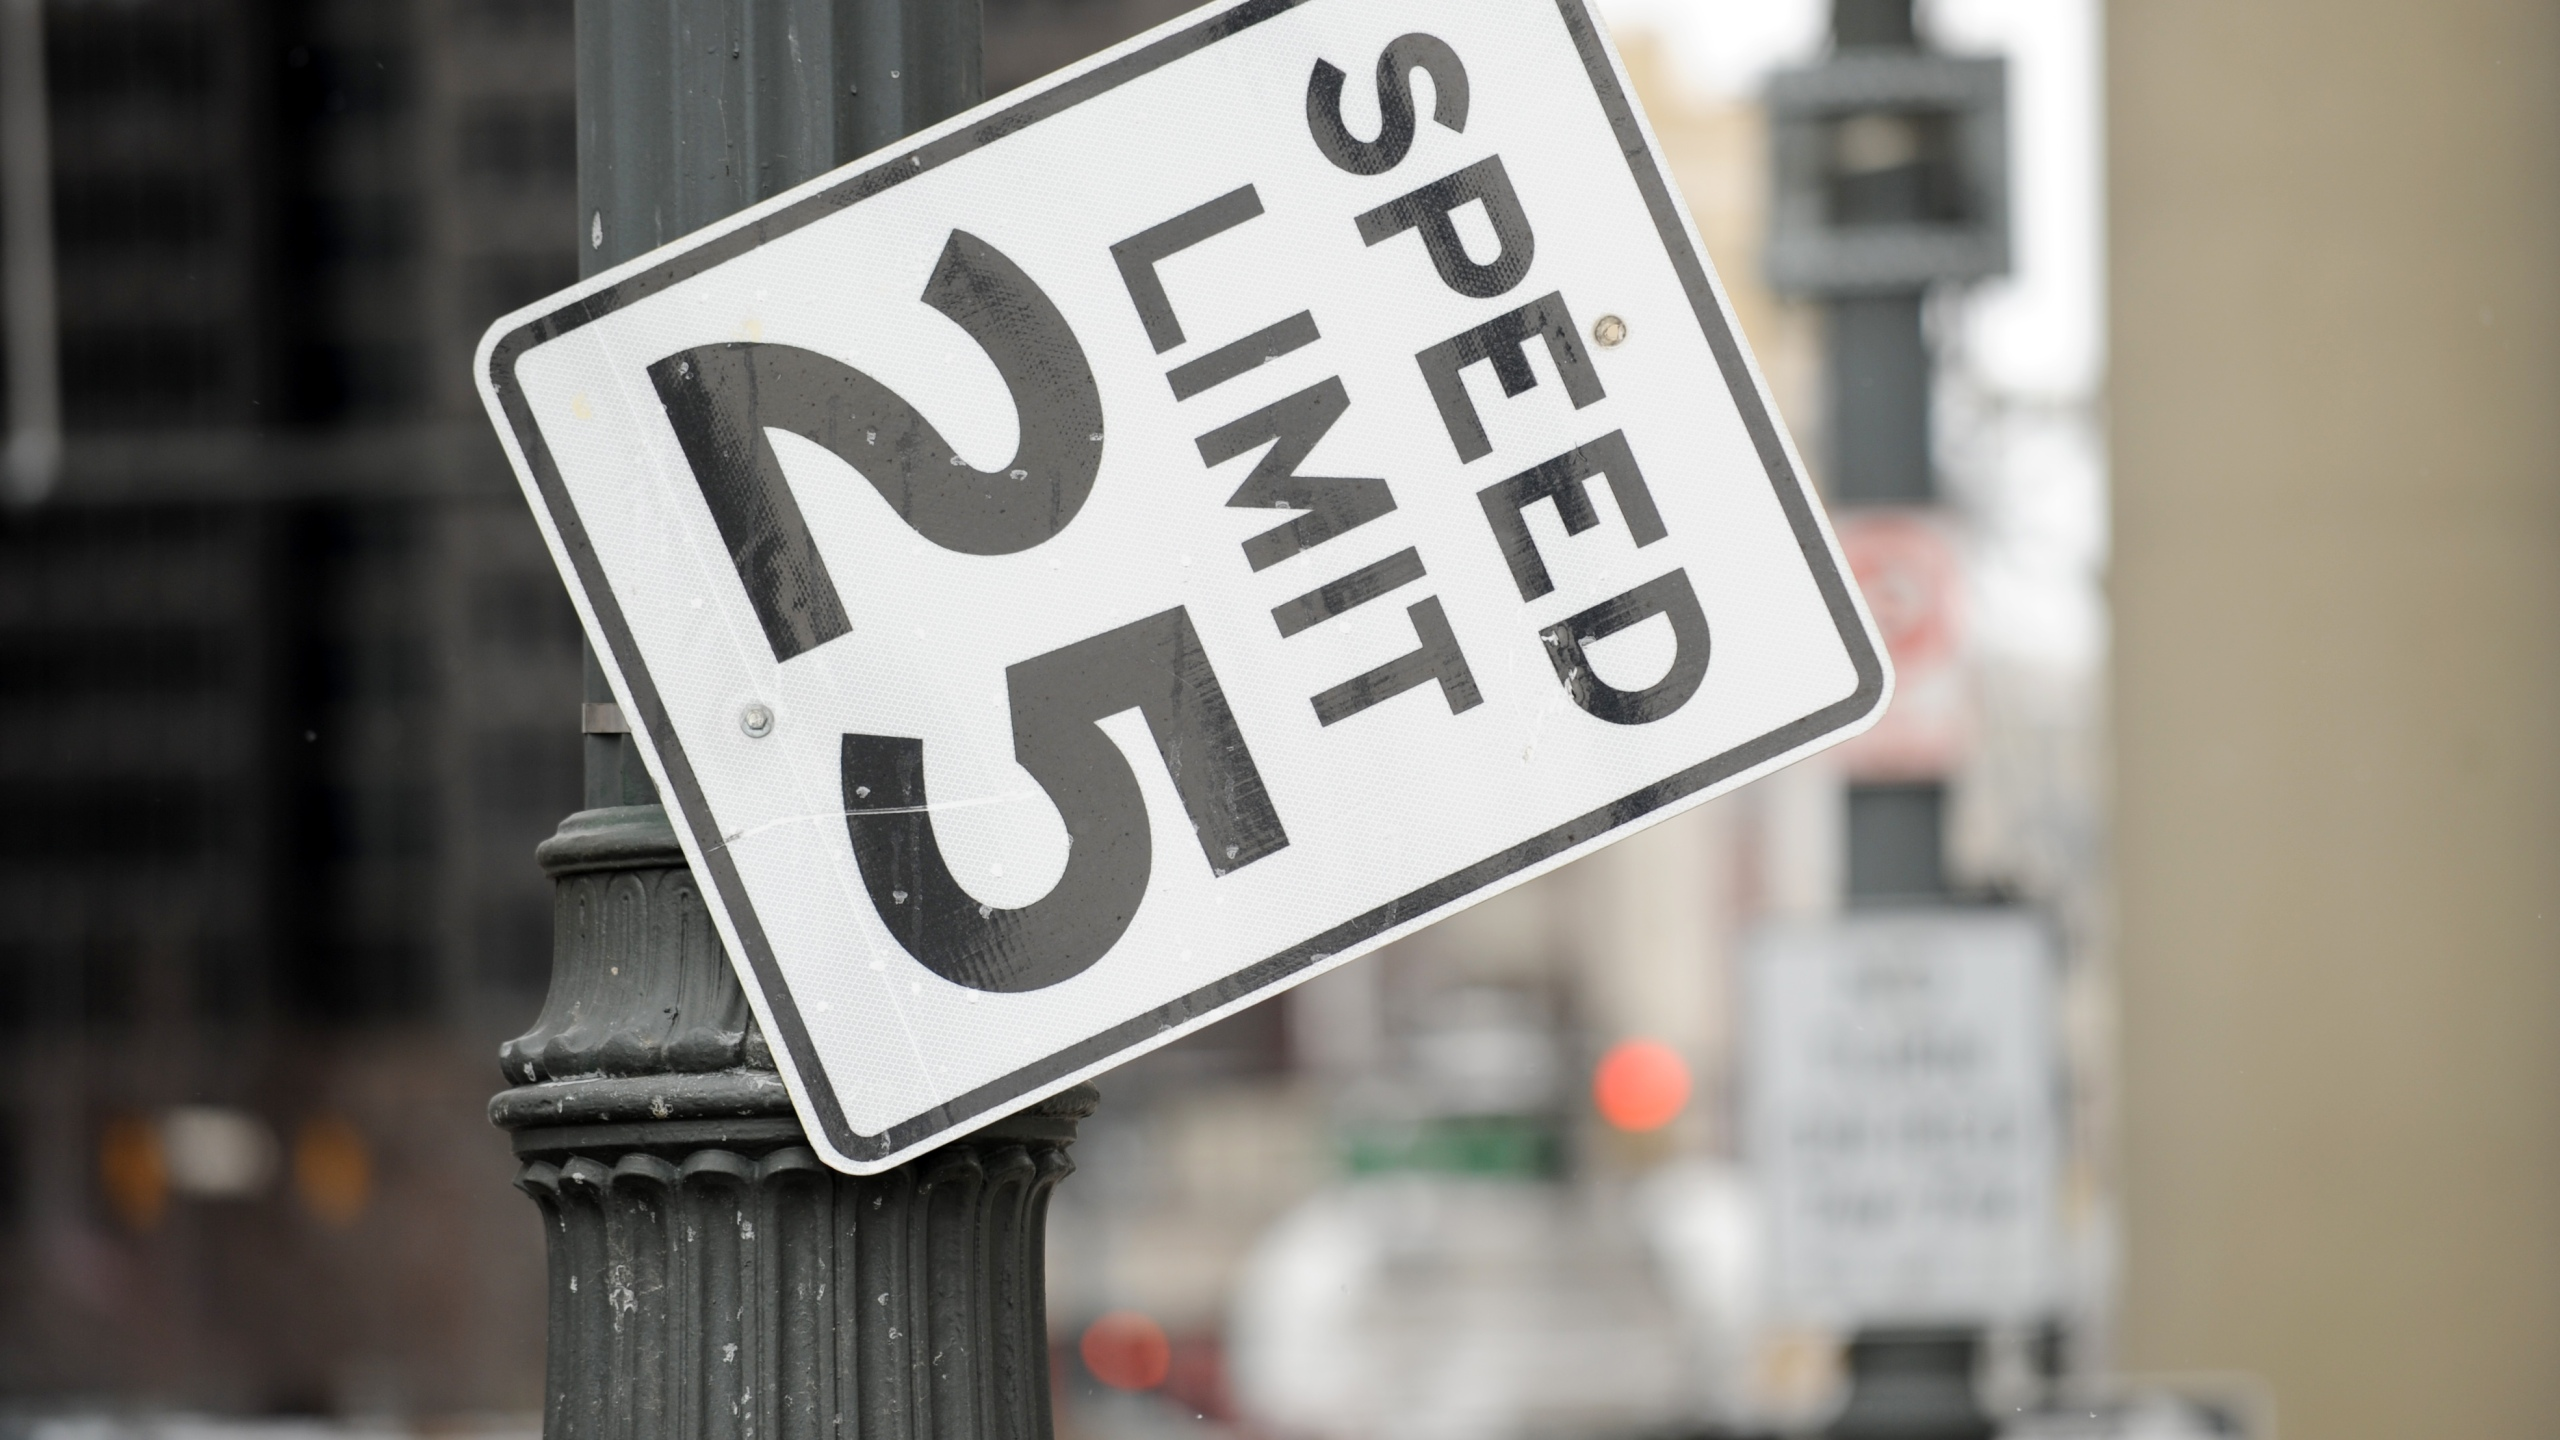 A speed limit sign that is tilting due to a broken bolt January 12, 2011 in Detroit, Michigan. AFP PHOTO/Stan HONDA (Photo by STAN HONDA / AFP) (Photo by STAN HONDA/AFP via Getty Images)